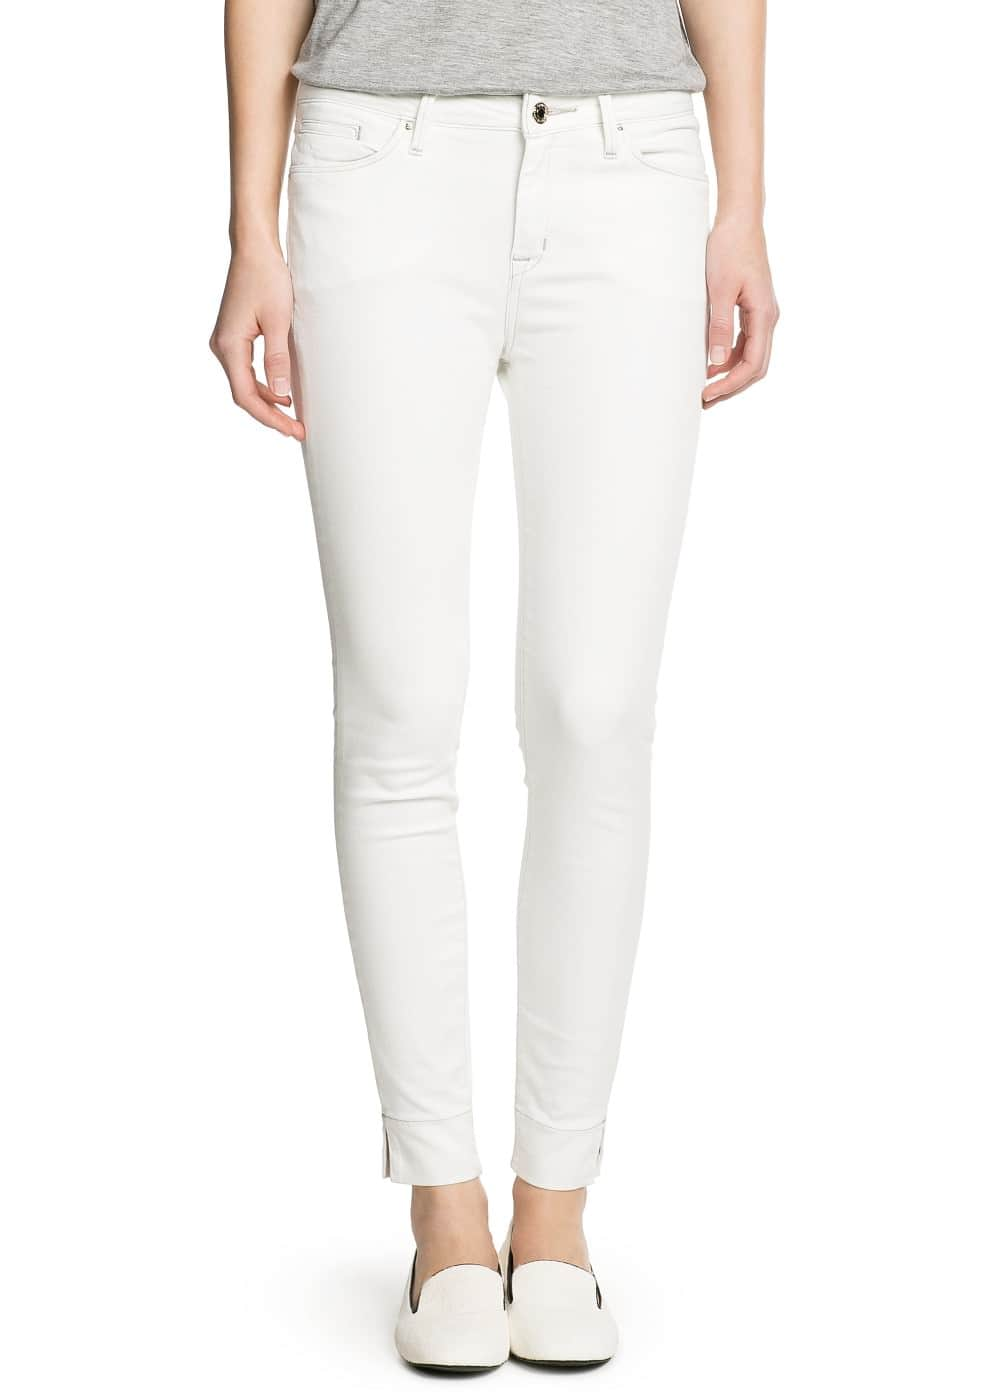 Cropped Audrey jeans